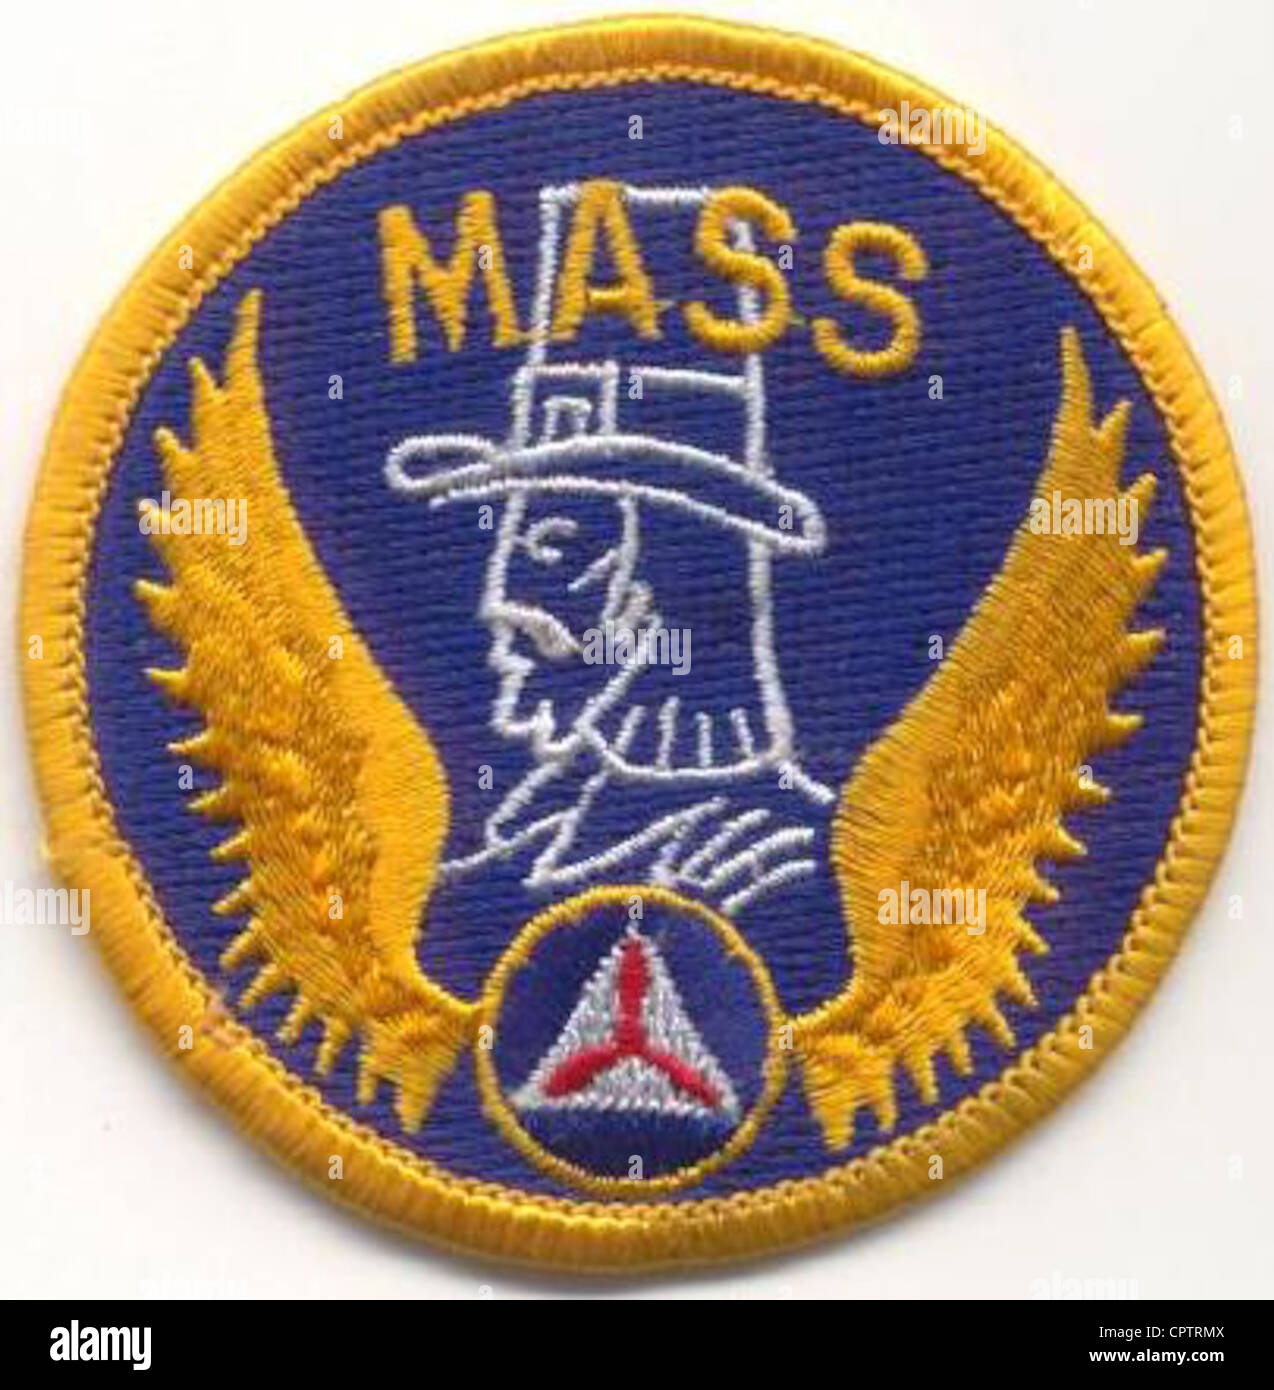 Insignia of the Massachusetts Wing, Civil Air Patrol - Stock Image